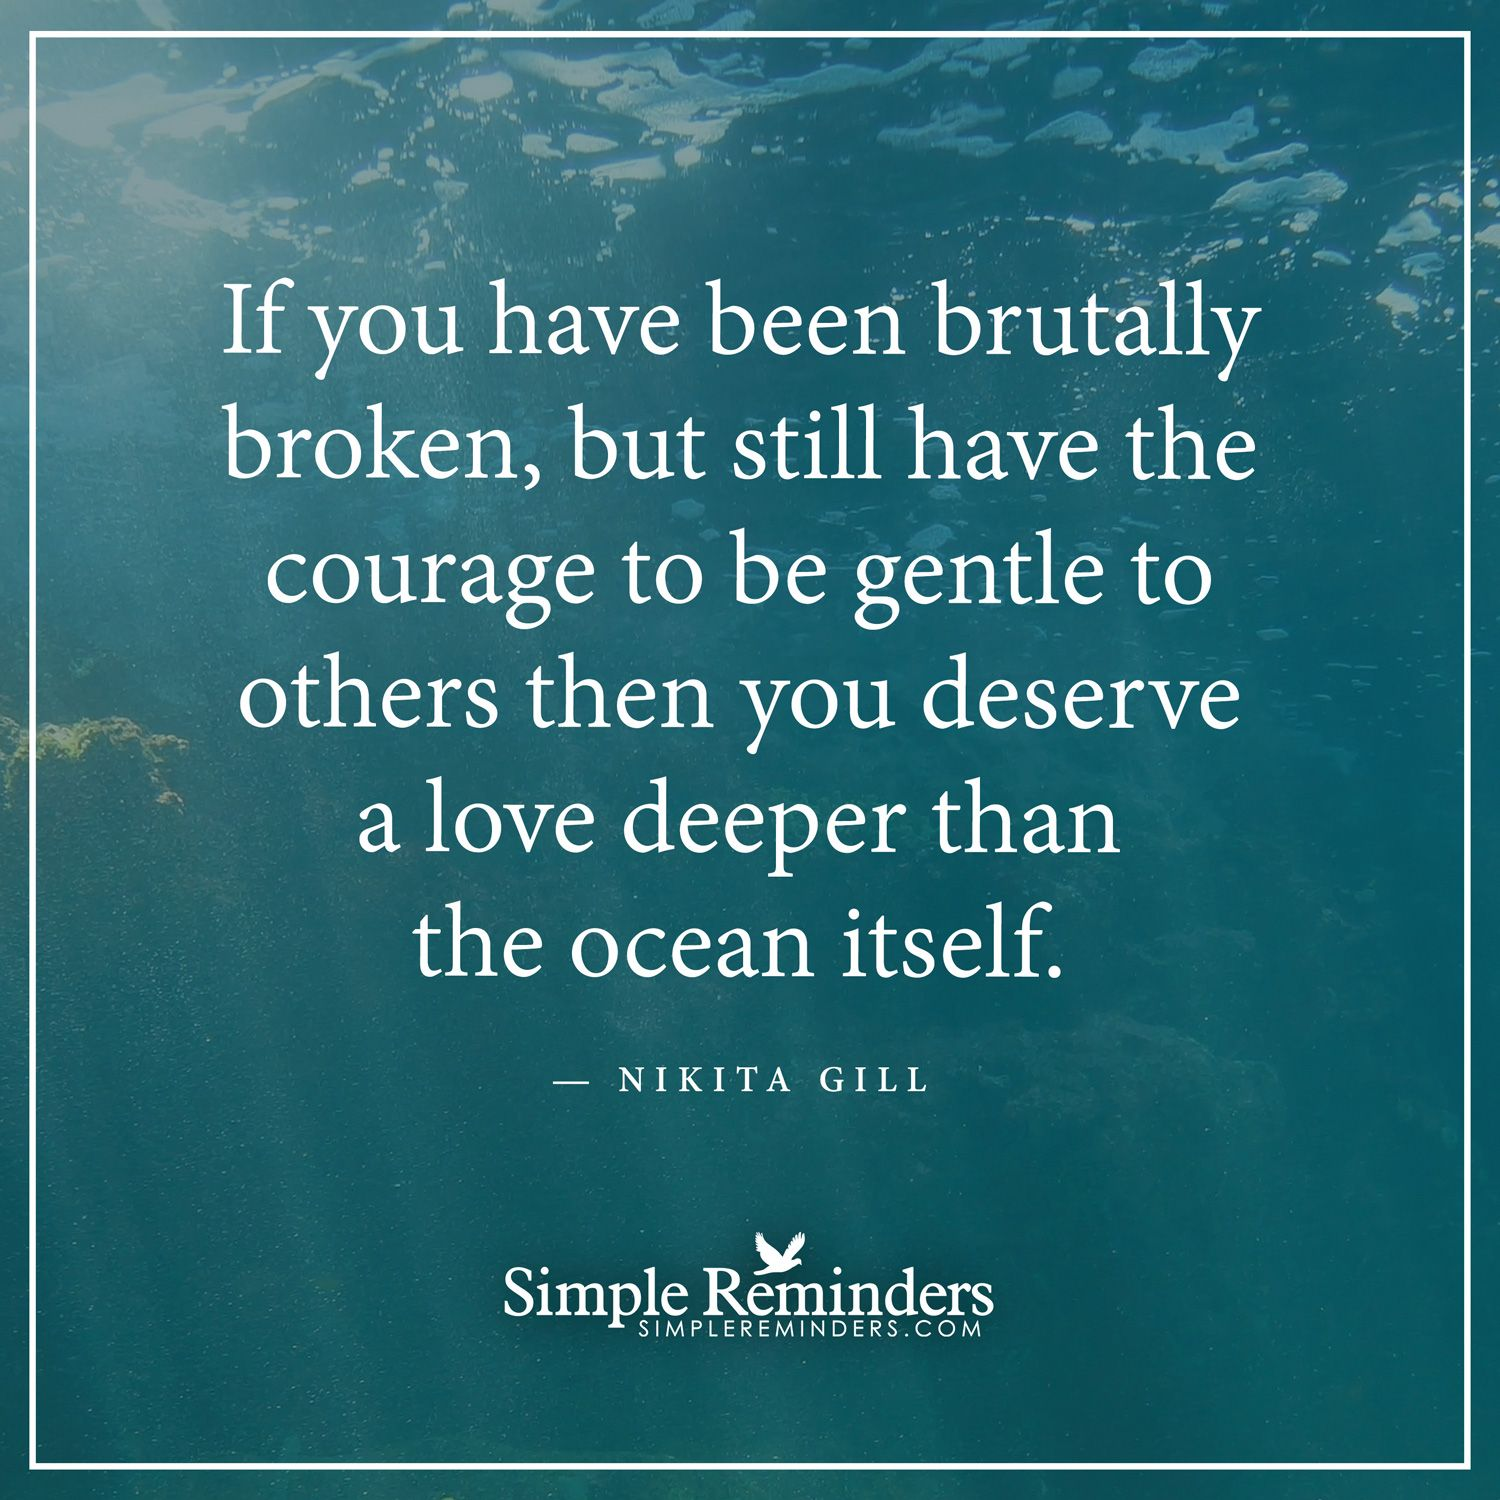 Courage to love If you have been brutally broken but still